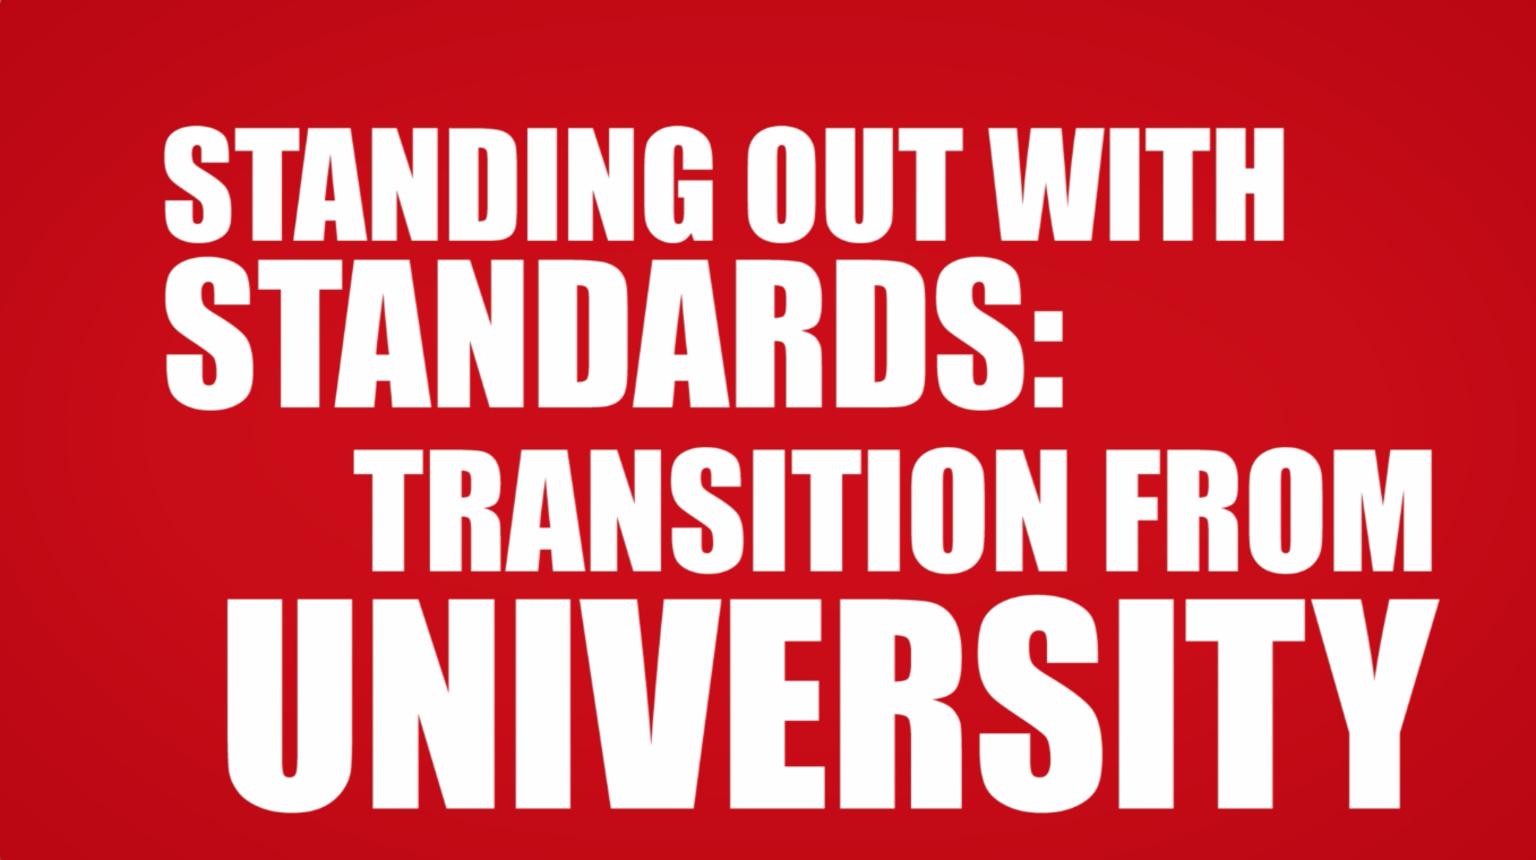 Transition From University: Standing Out with Standards